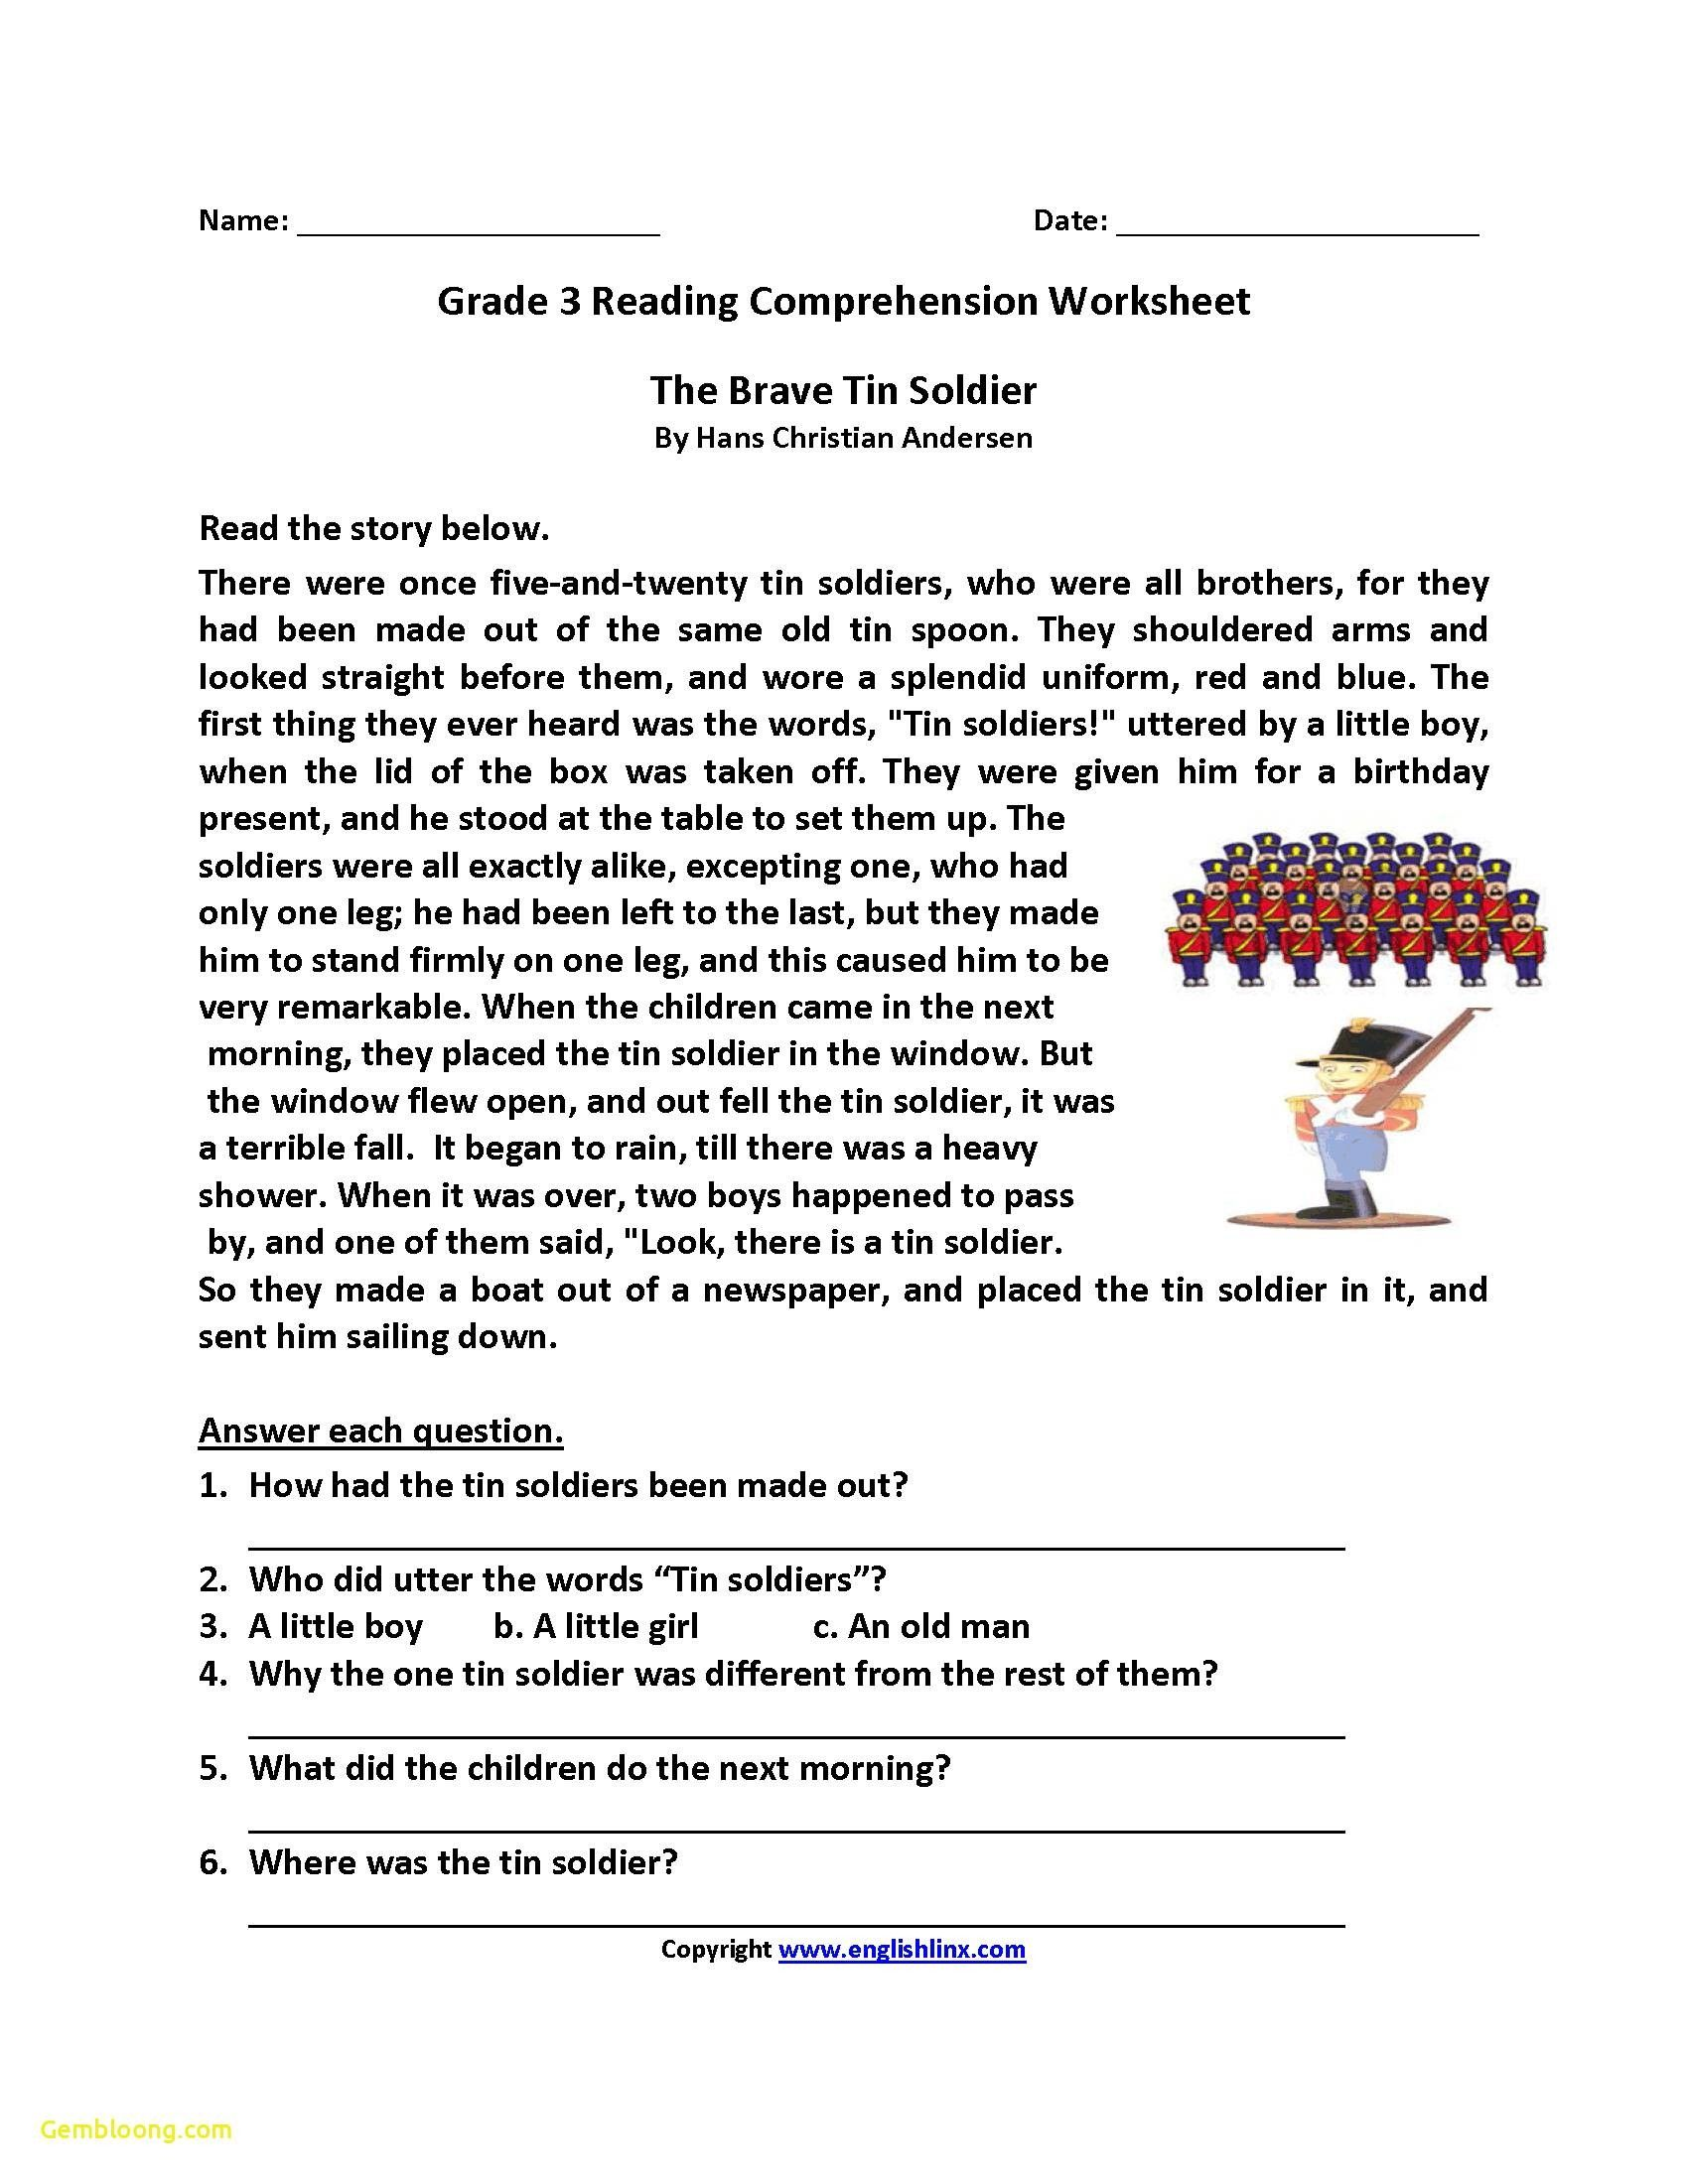 25+ Reading and comprehension worksheets for grade 3 Images